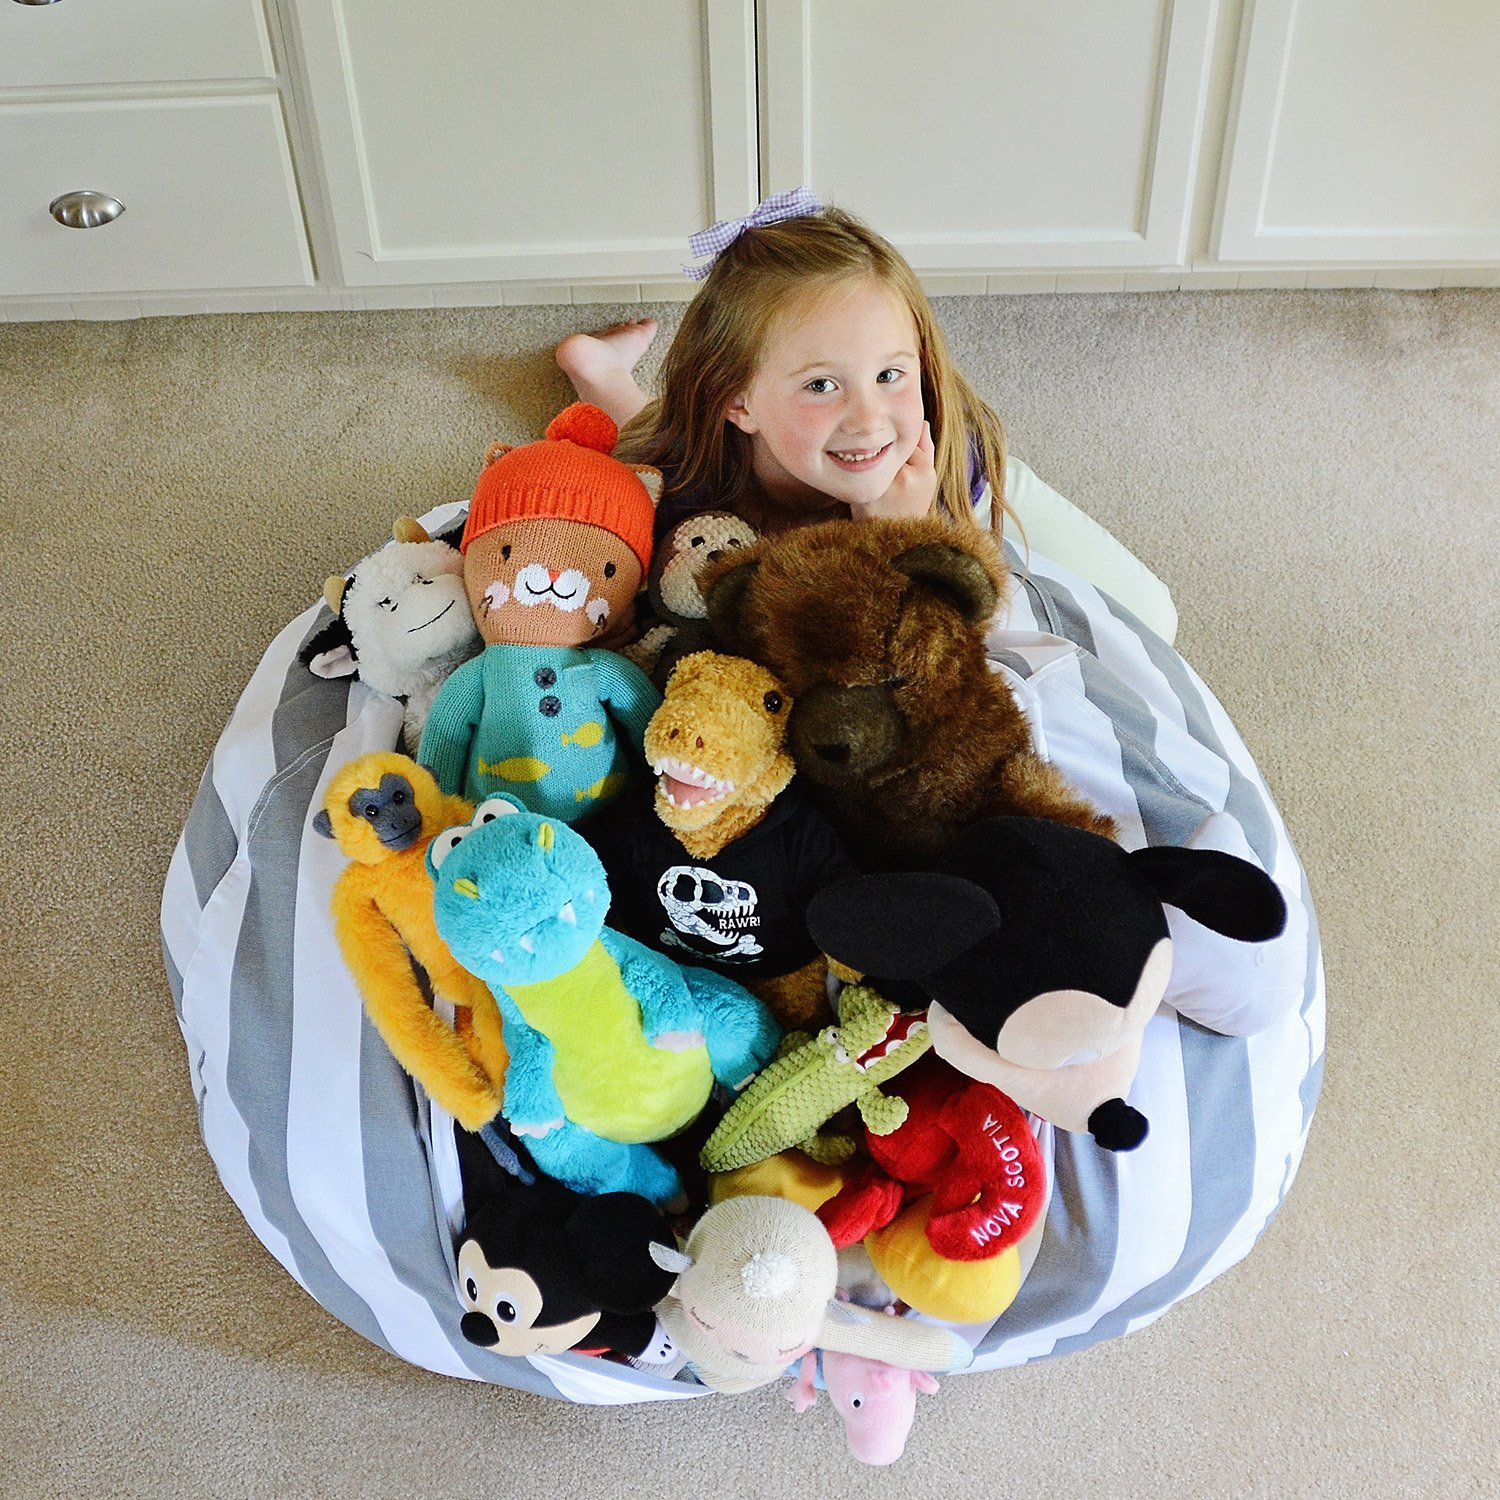 EXTRA LARGE - Stuffed Animal Storage Bean Bag Chair - Premium Cotton Canvas - Clean up the Room and Put Those Critters to Work for You! & EXTRA LARGE - Stuffed Animal Storage Bean Bag Chair - Premium Cotton ...